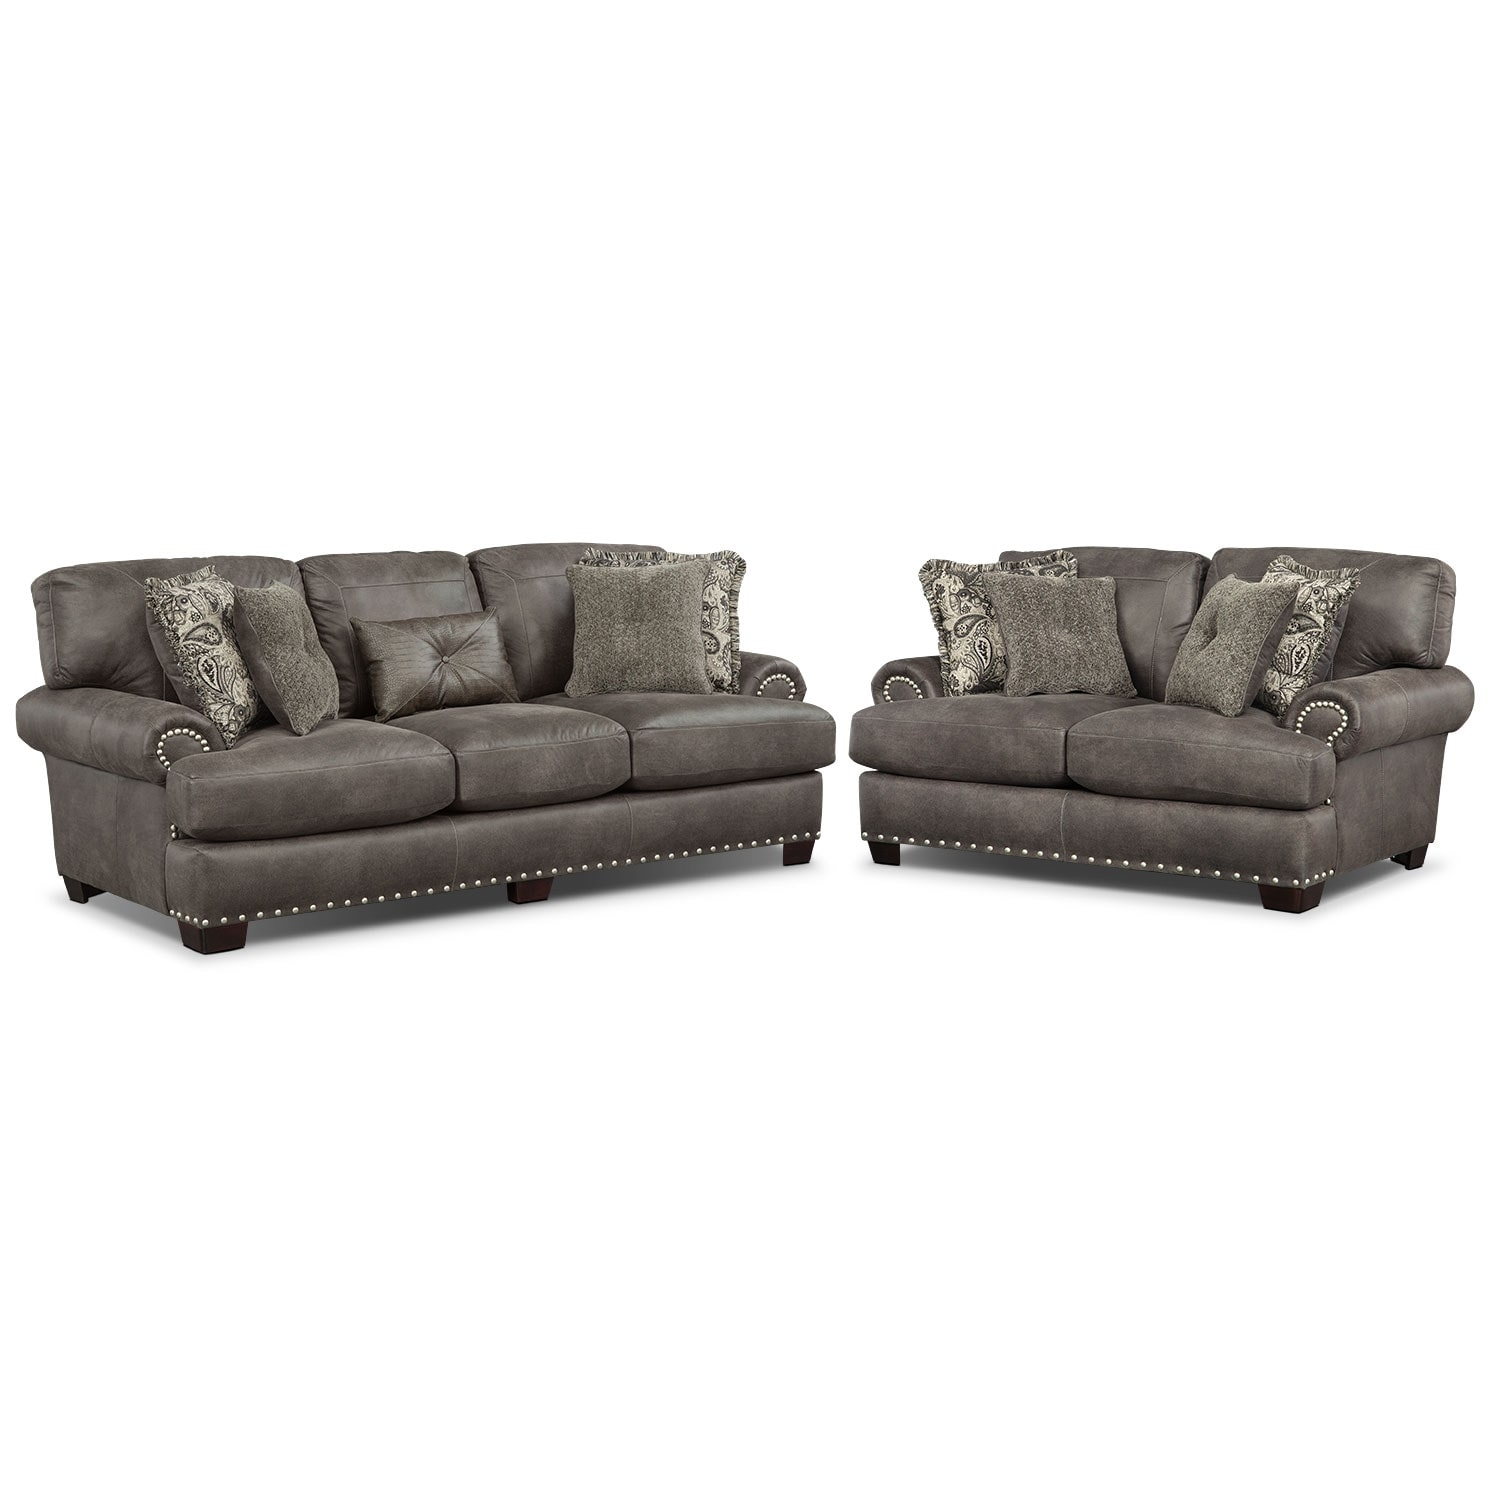 Living Room Furniture - Burlington Steel 2 Pc. Living Room